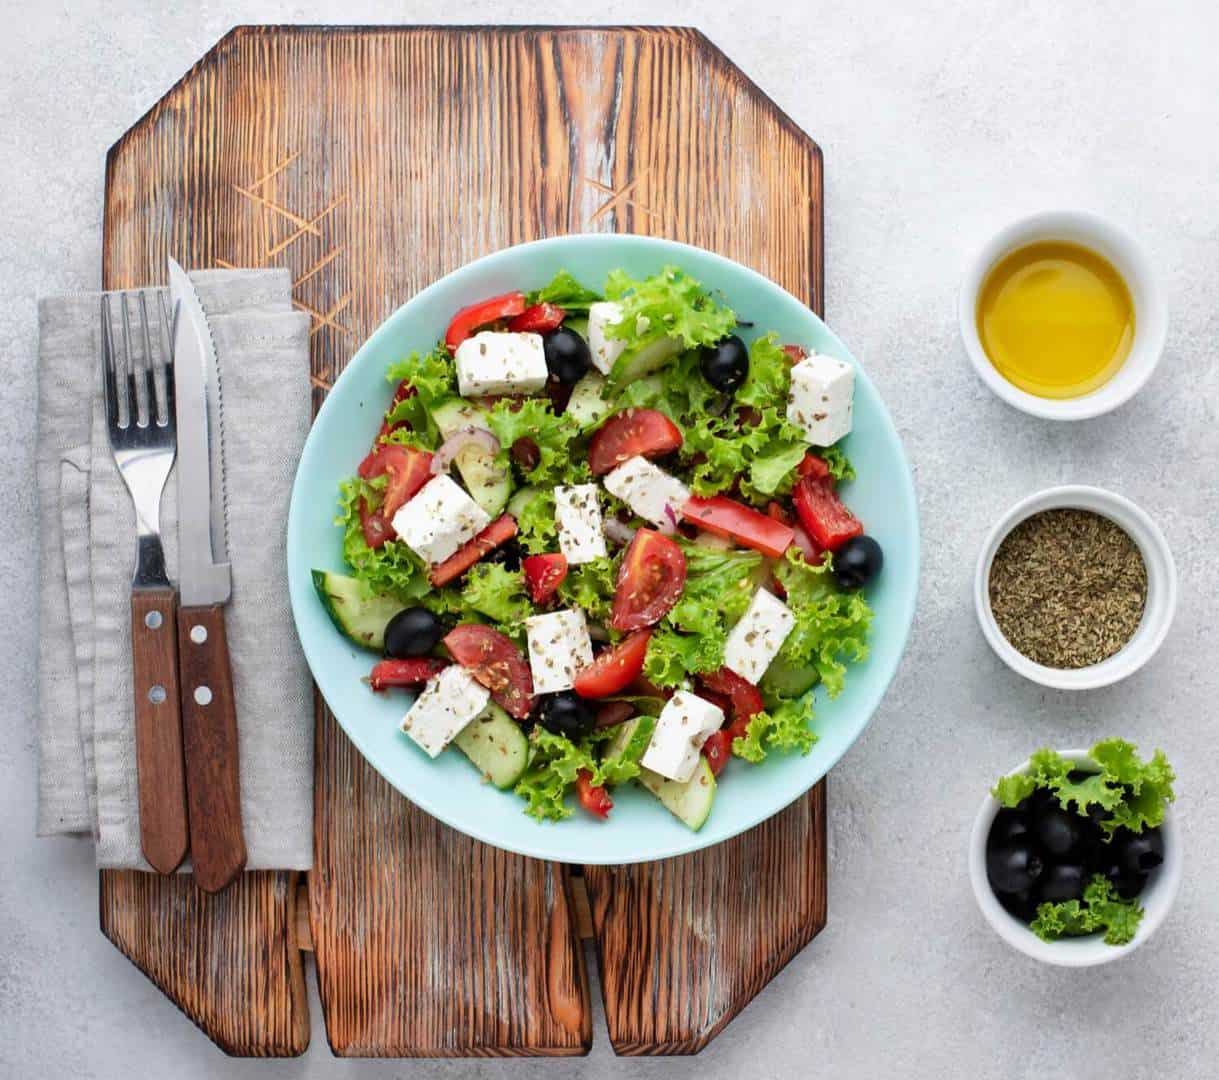 Protein Chefs meal plans in Windsor